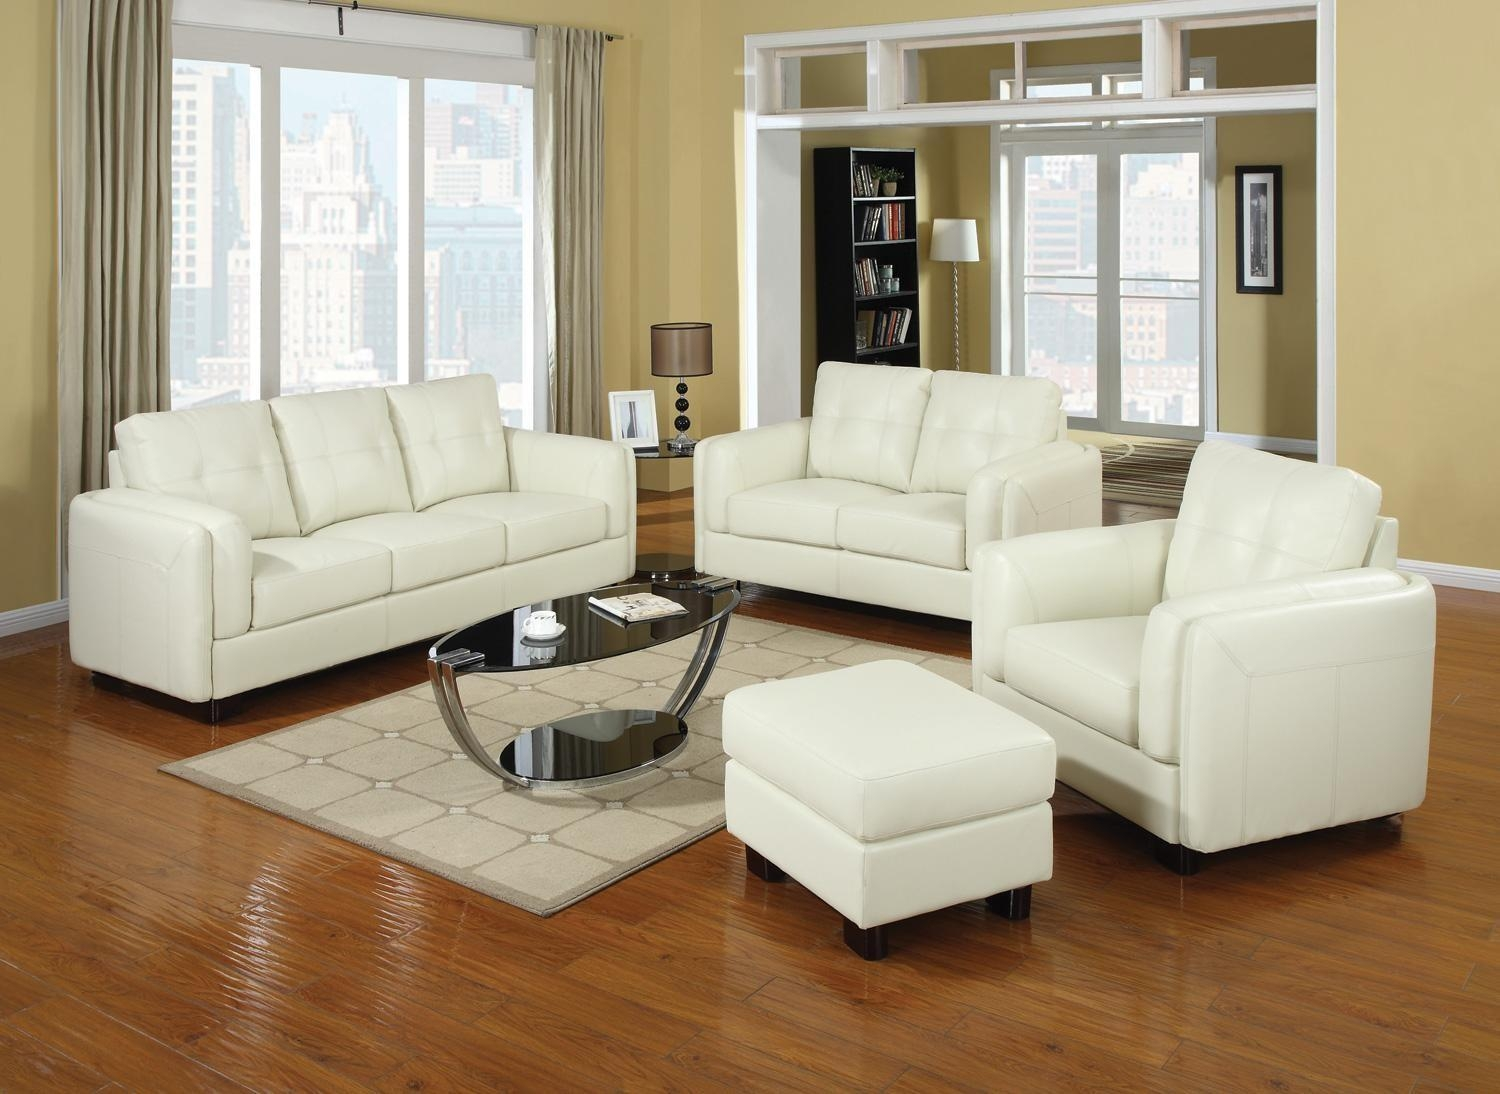 Sofas Center : Cream Color Leather Sofa Set Gallery Image With Regard To Cream Colored Sofas (View 19 of 20)